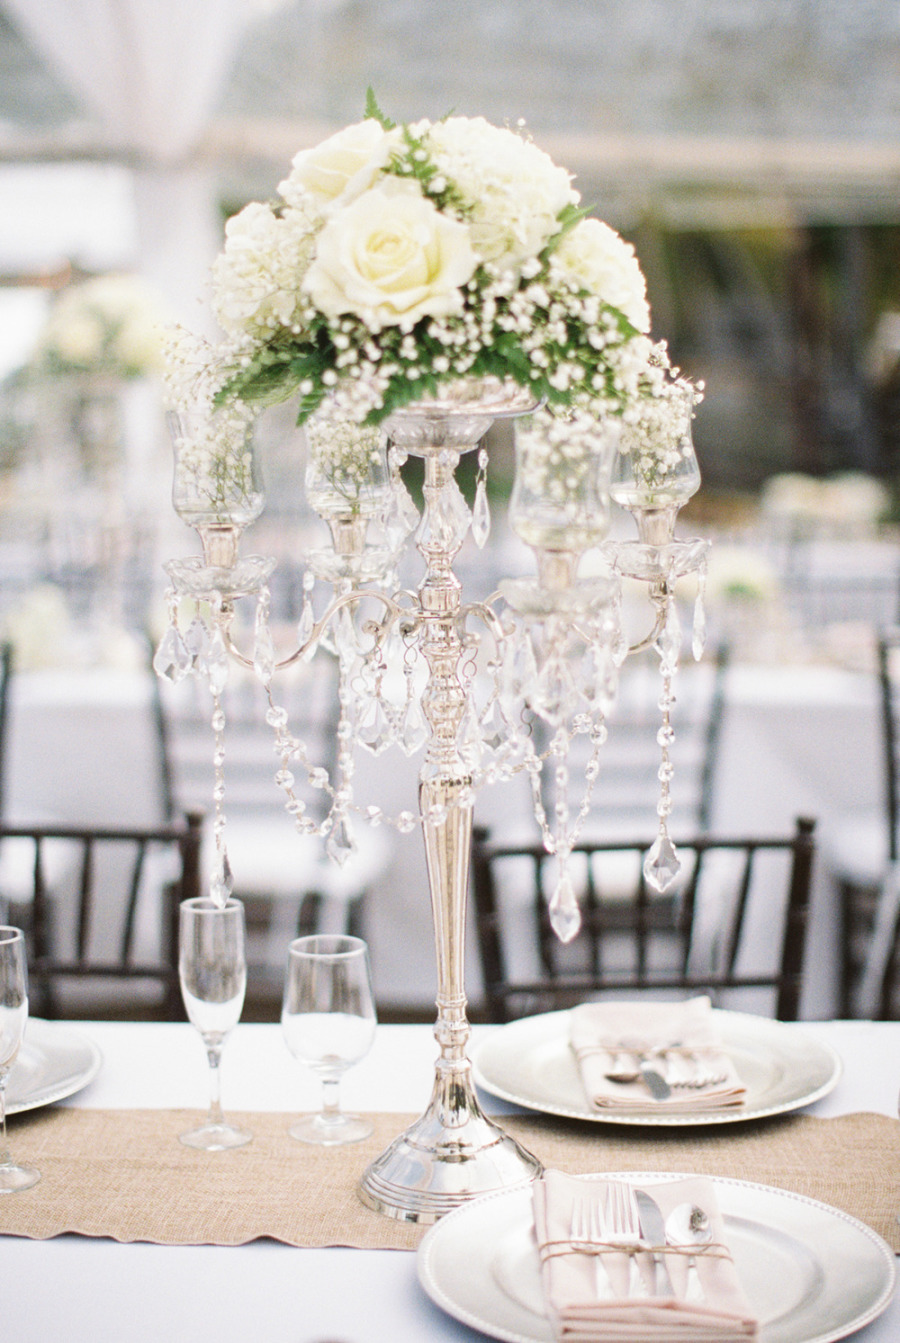 Wedding Centerpieces Inspiration | Wedding Table Centerpieces